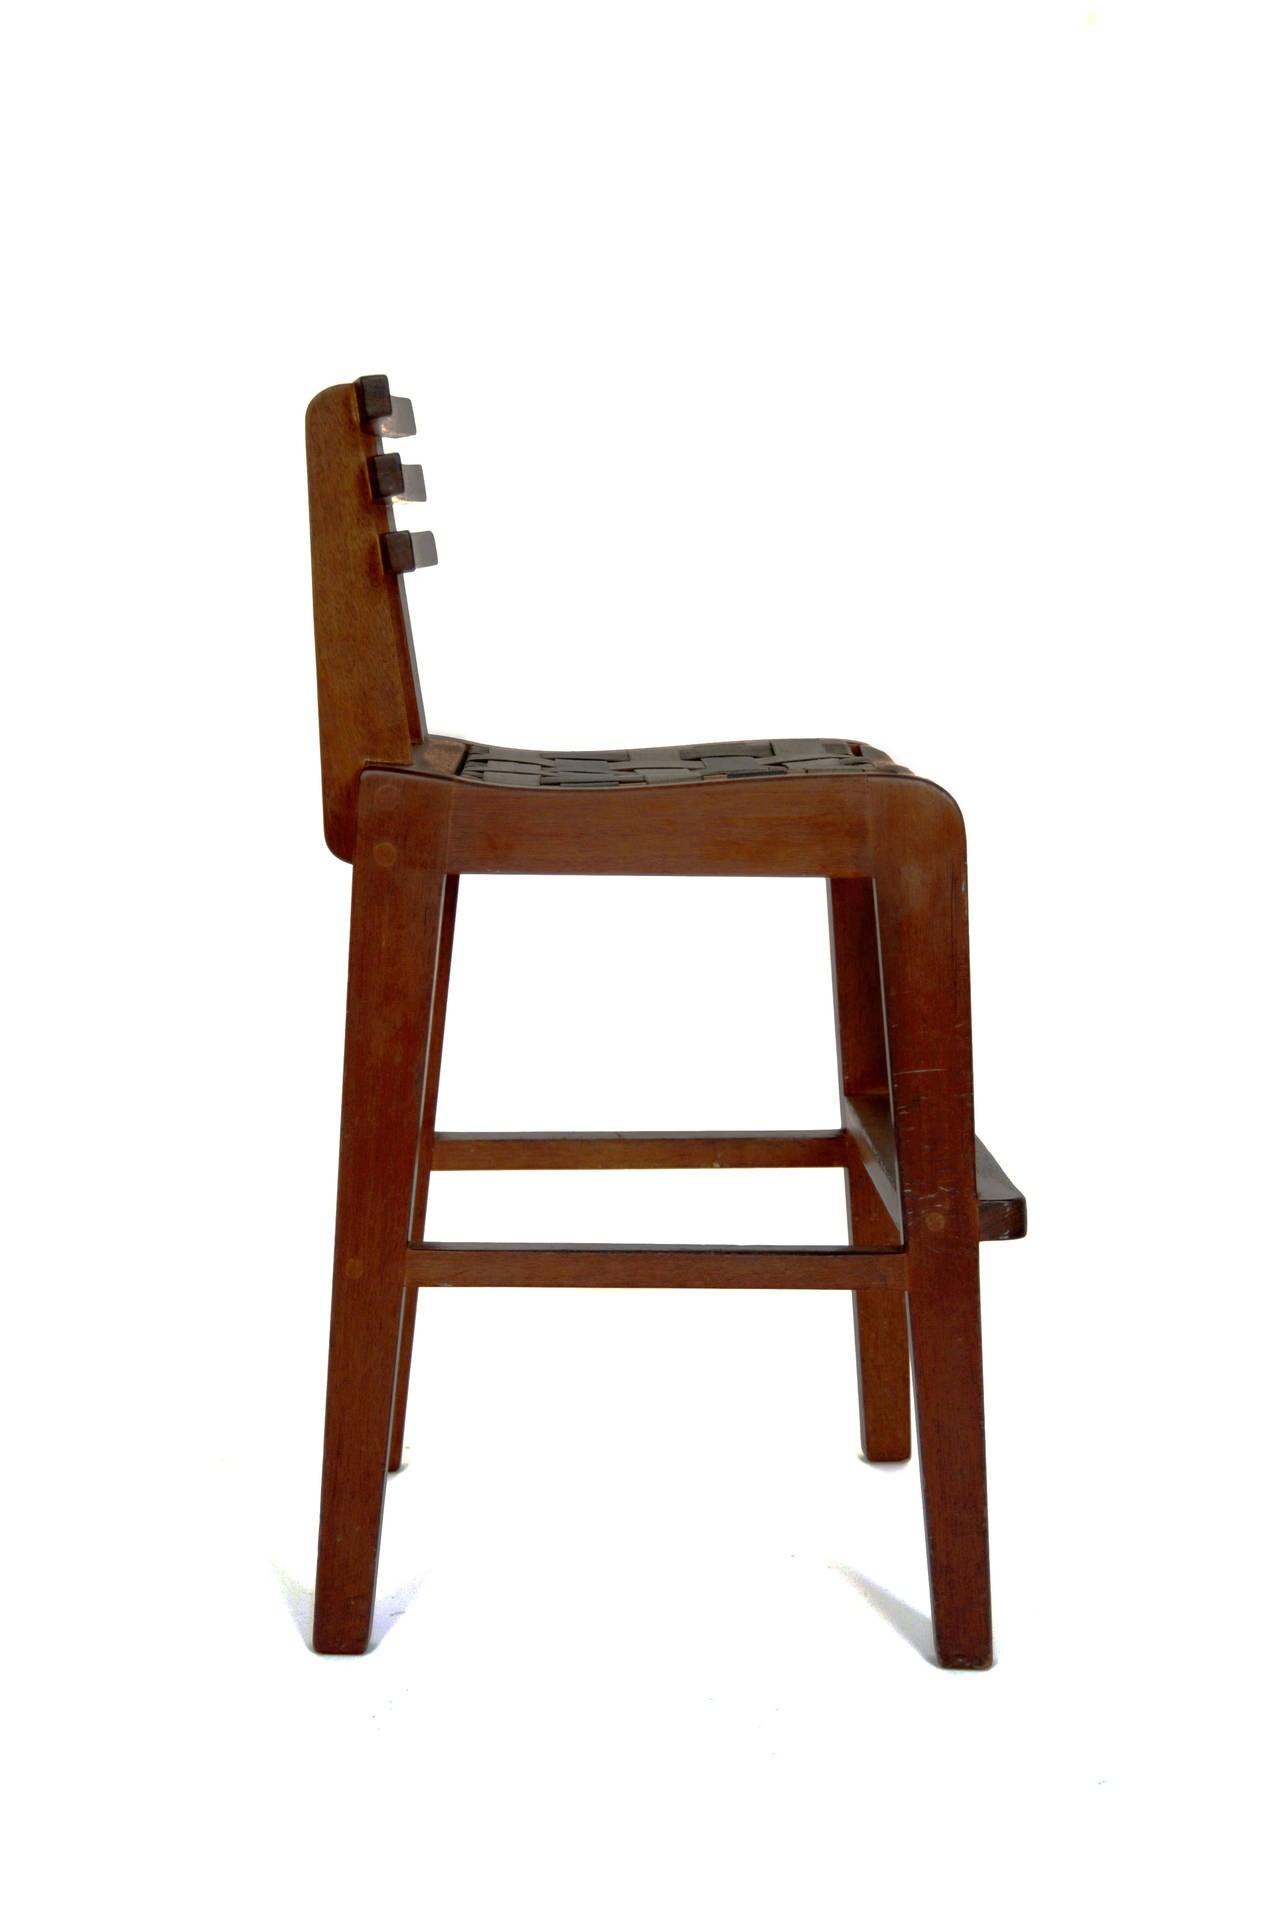 American 1940s Child Craft Chair For Sale